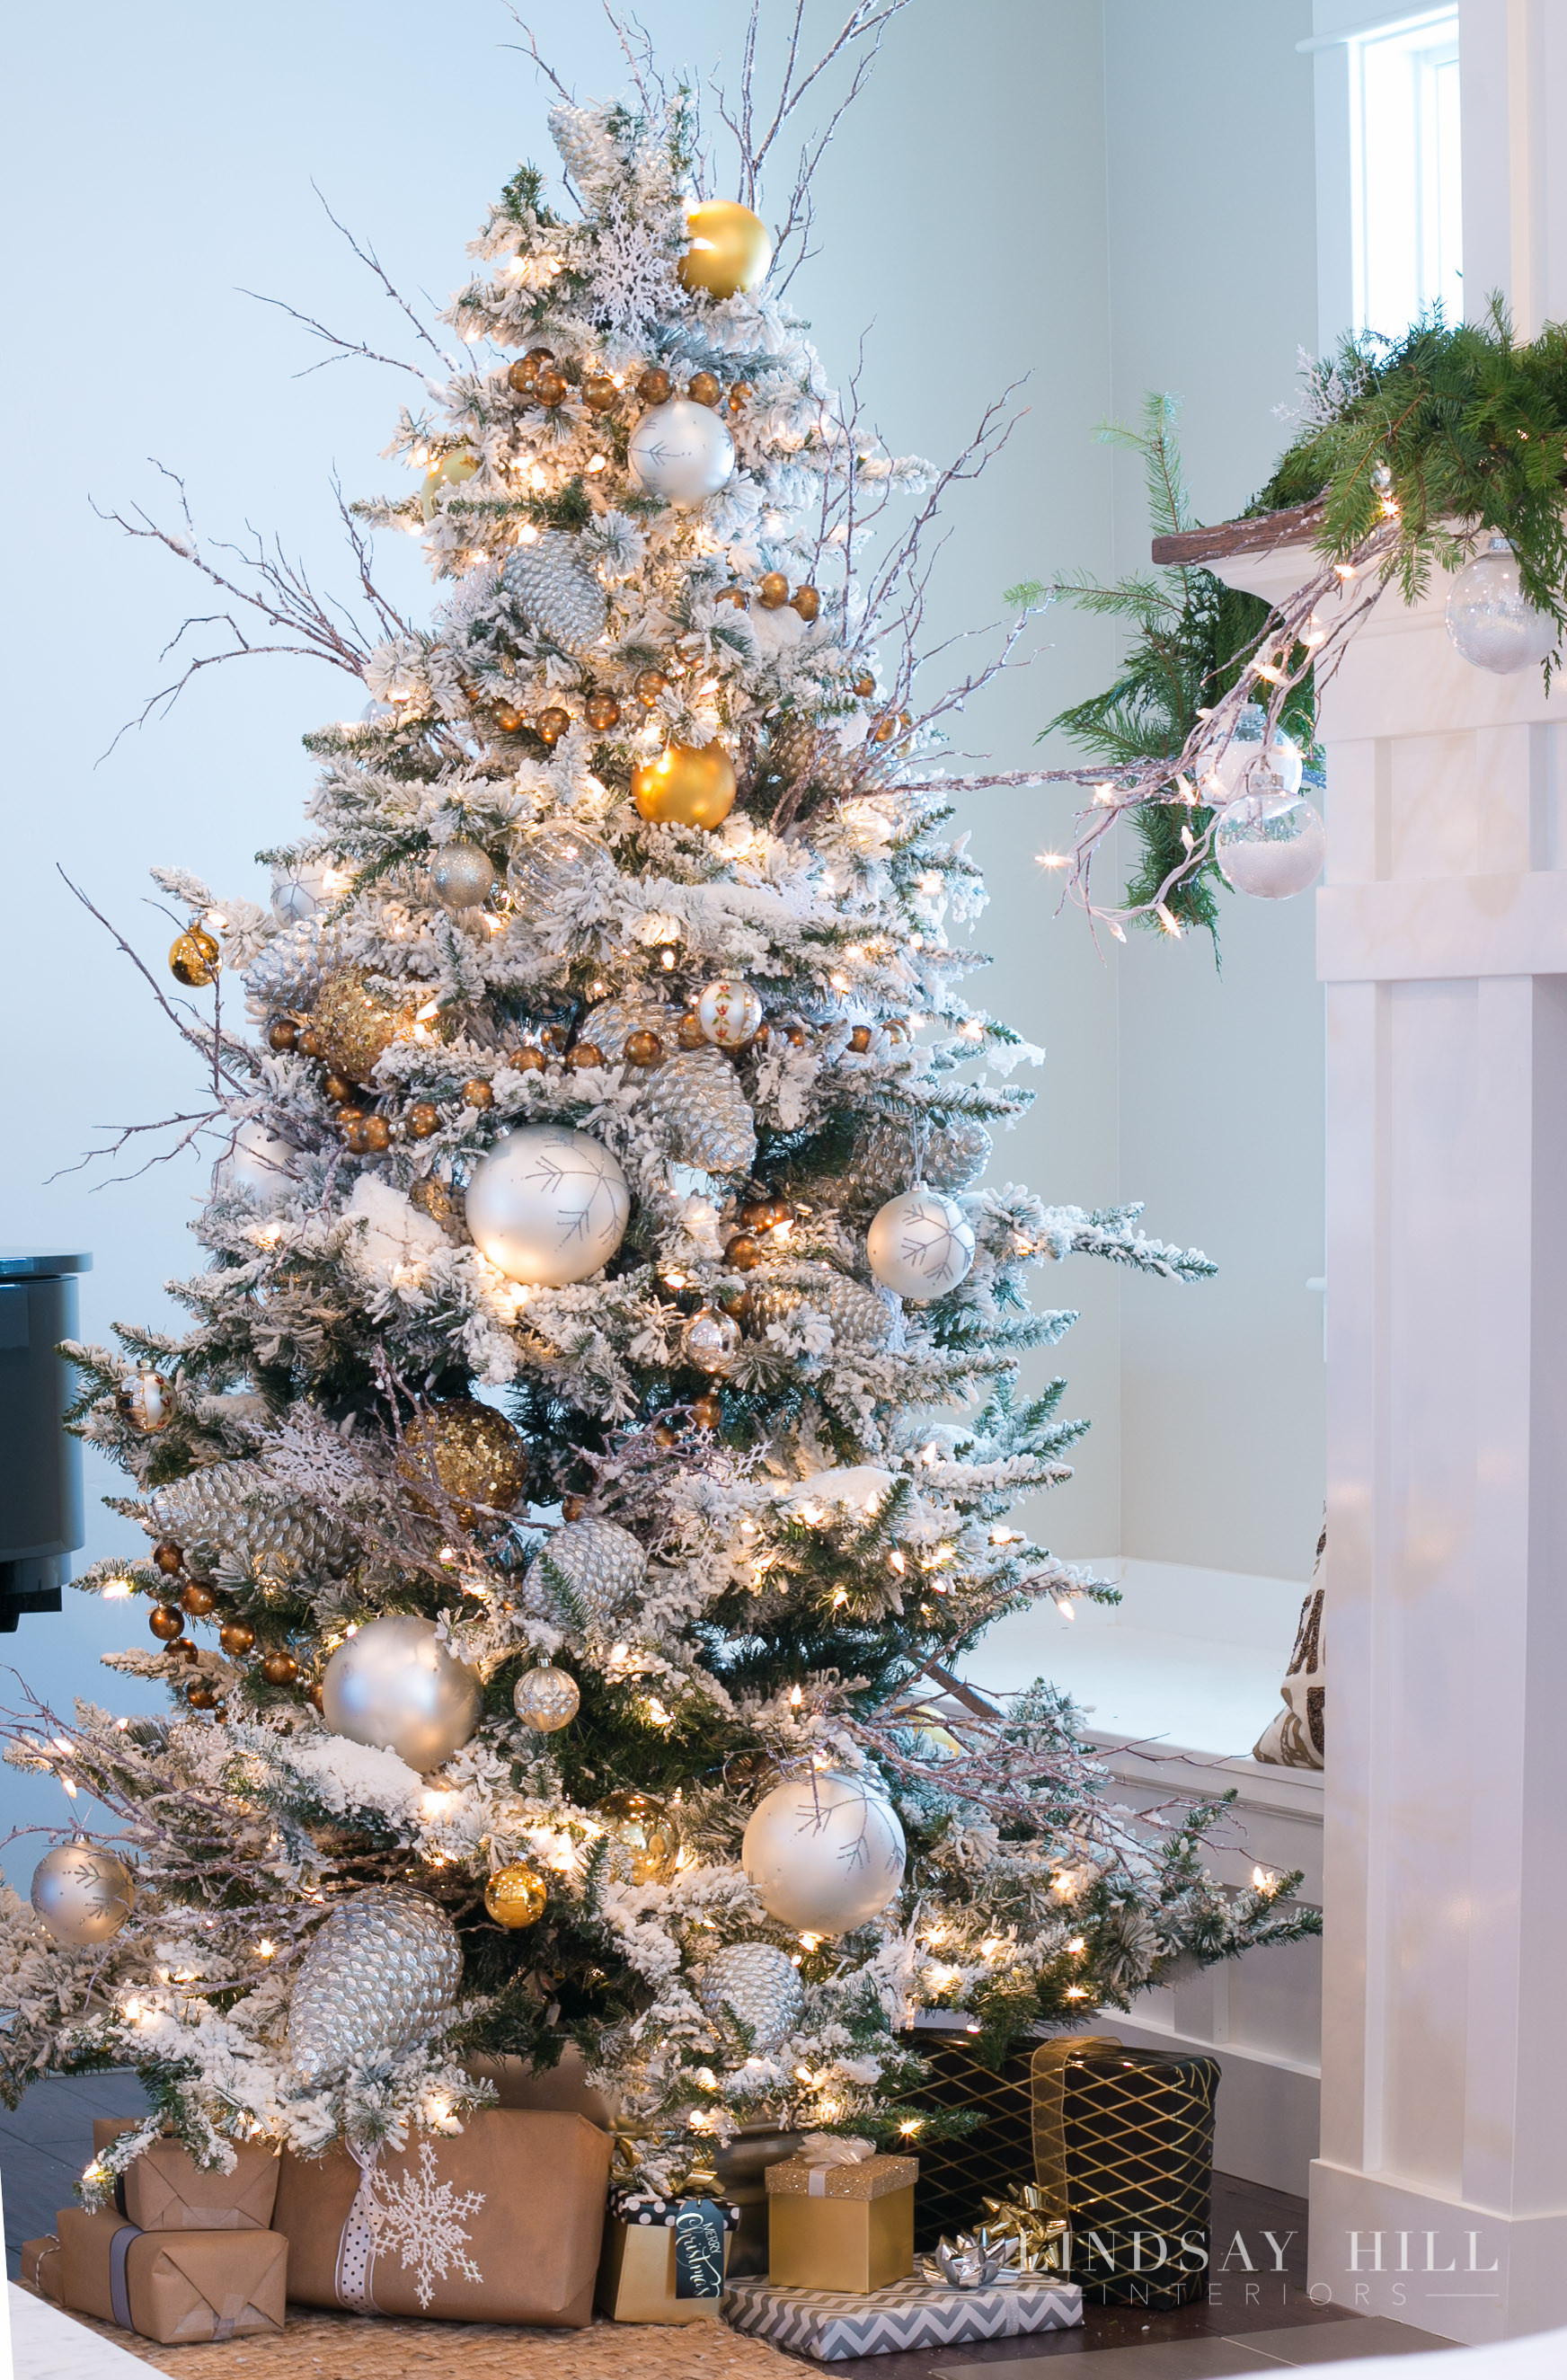 lindsay hill interiors holiday living tree christmas tree